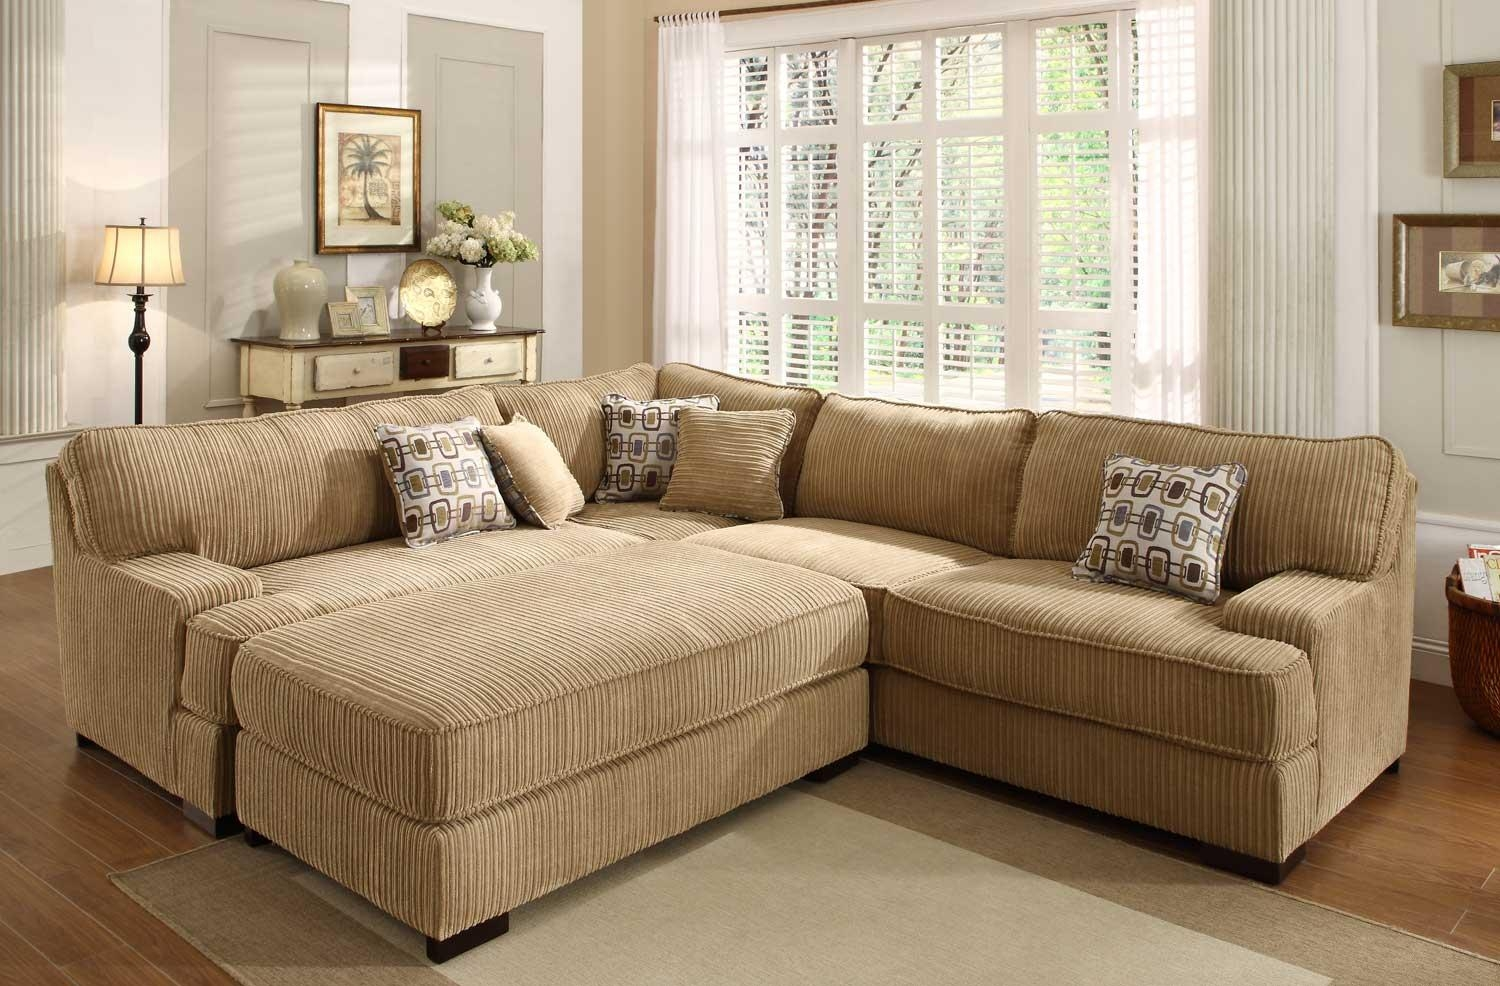 sectional sofa sale cost to reupholster with leather 20 top large ottoman ideas